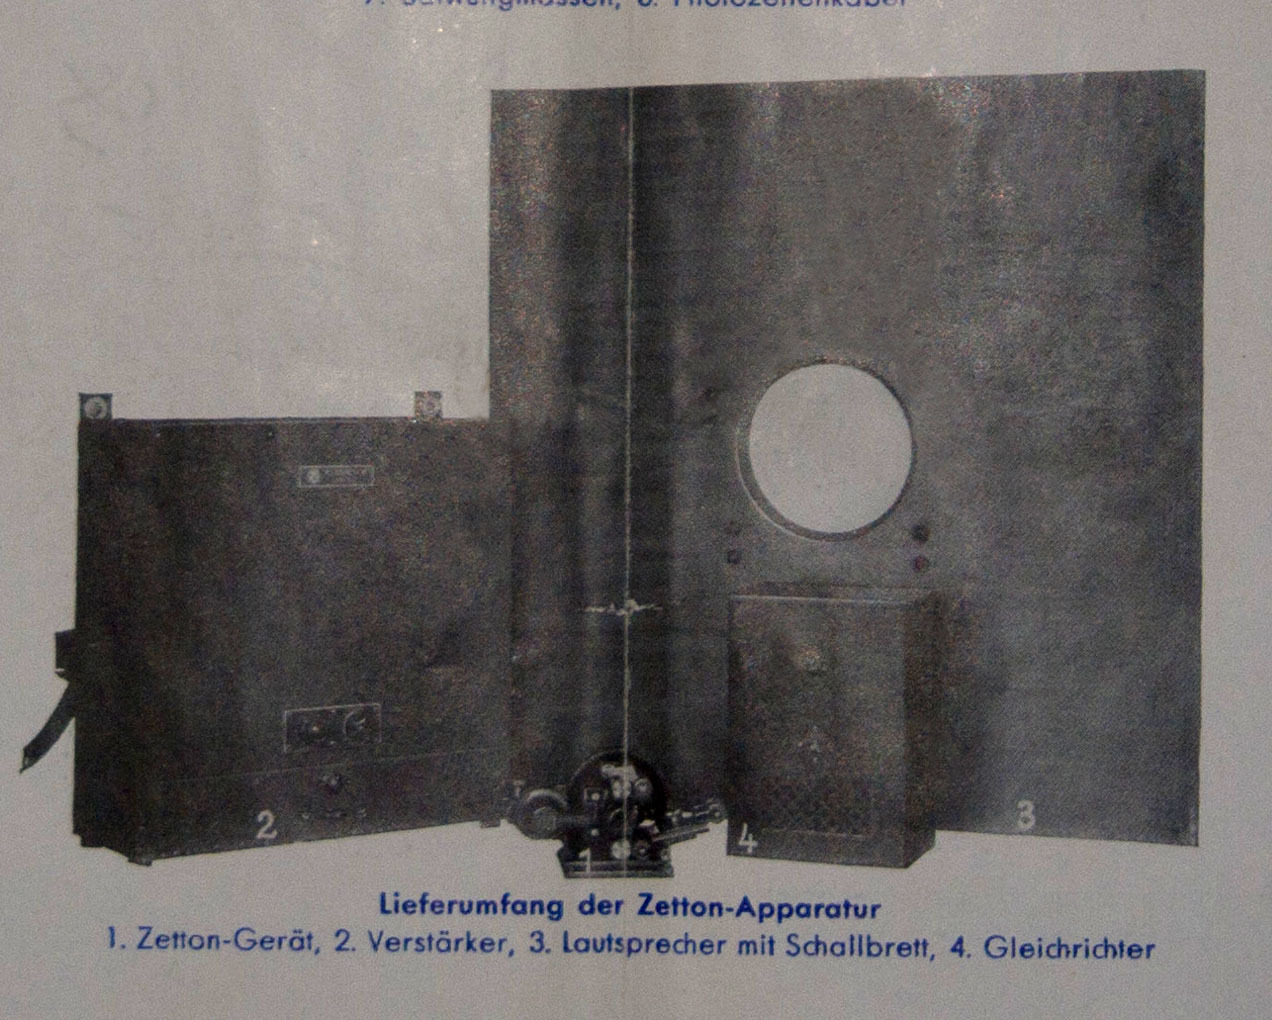 System components of ZETTON apparatus (1931)